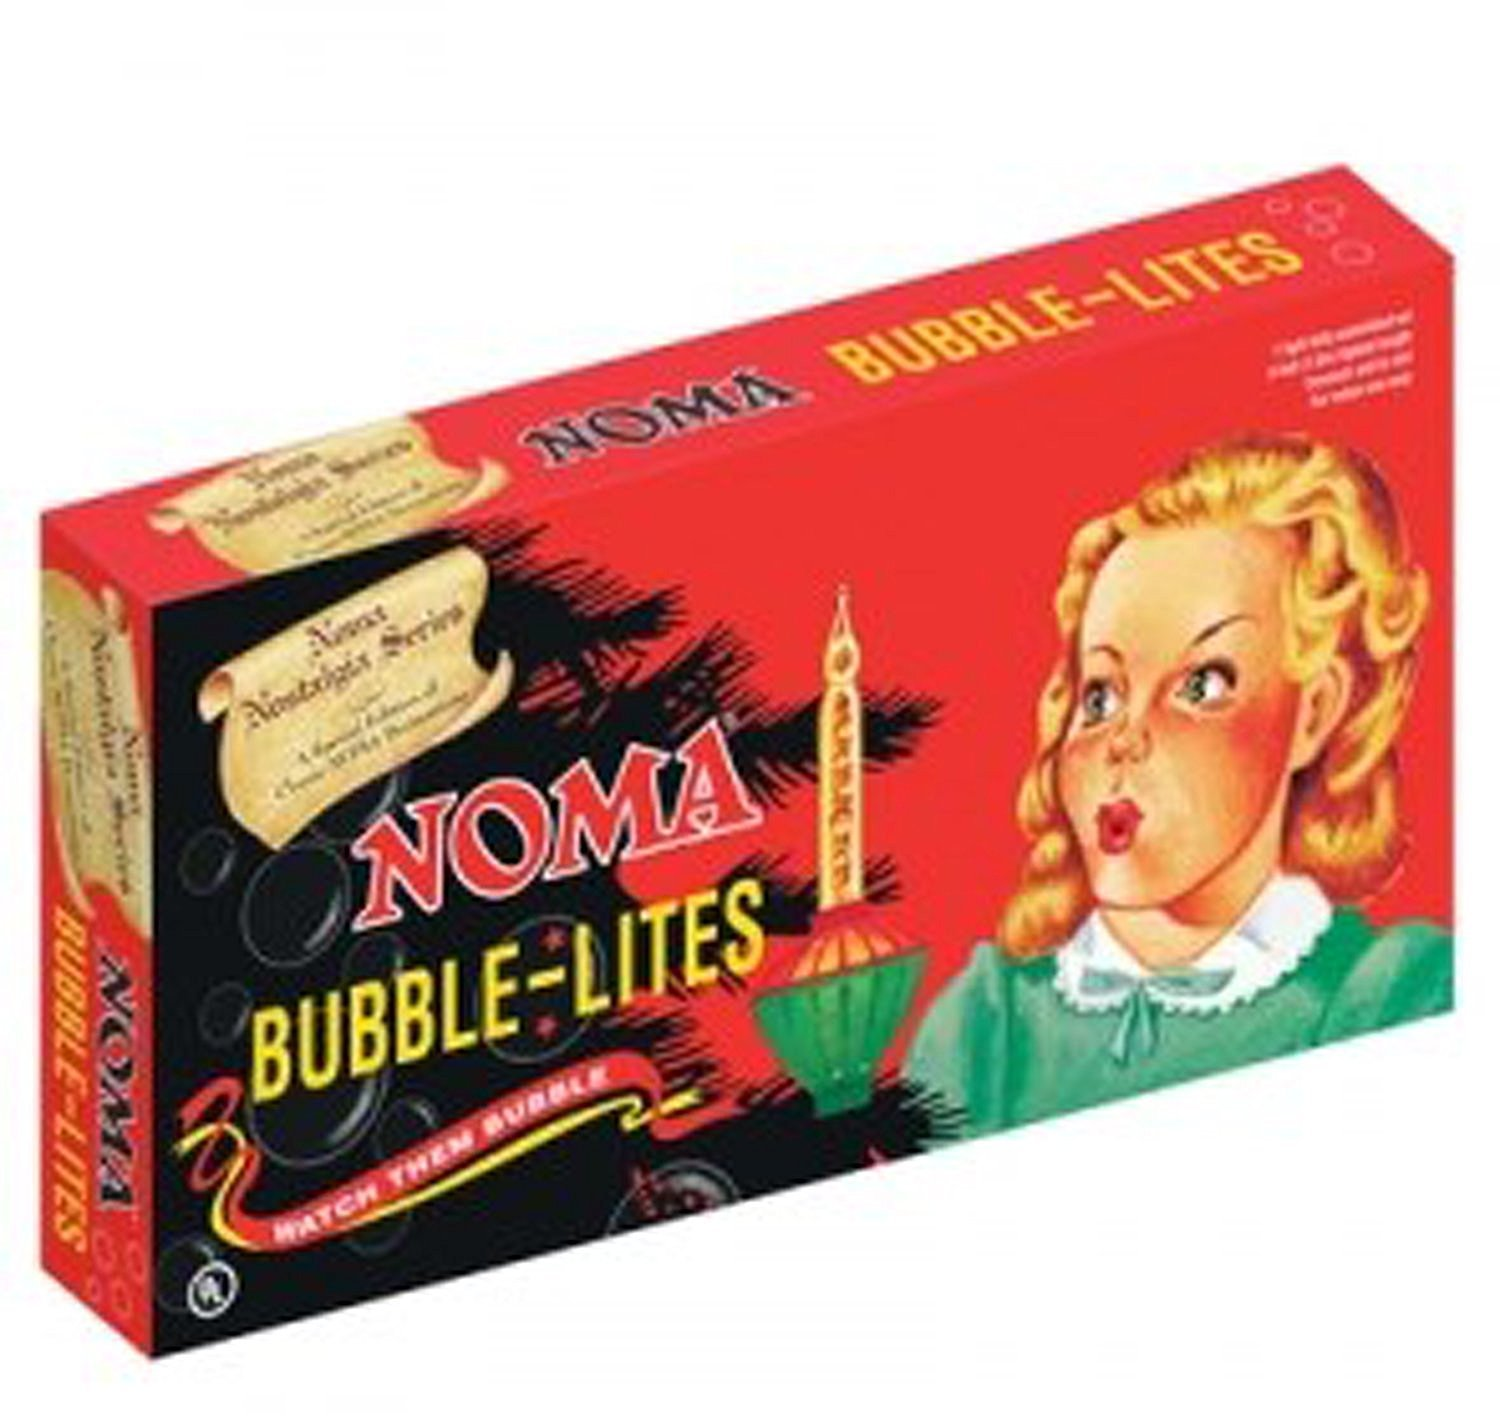 NOMA VINTAGE REPRO CHRISTMAS BUBBLE LIGHTS Red Gold Multi 7 bulb NEW